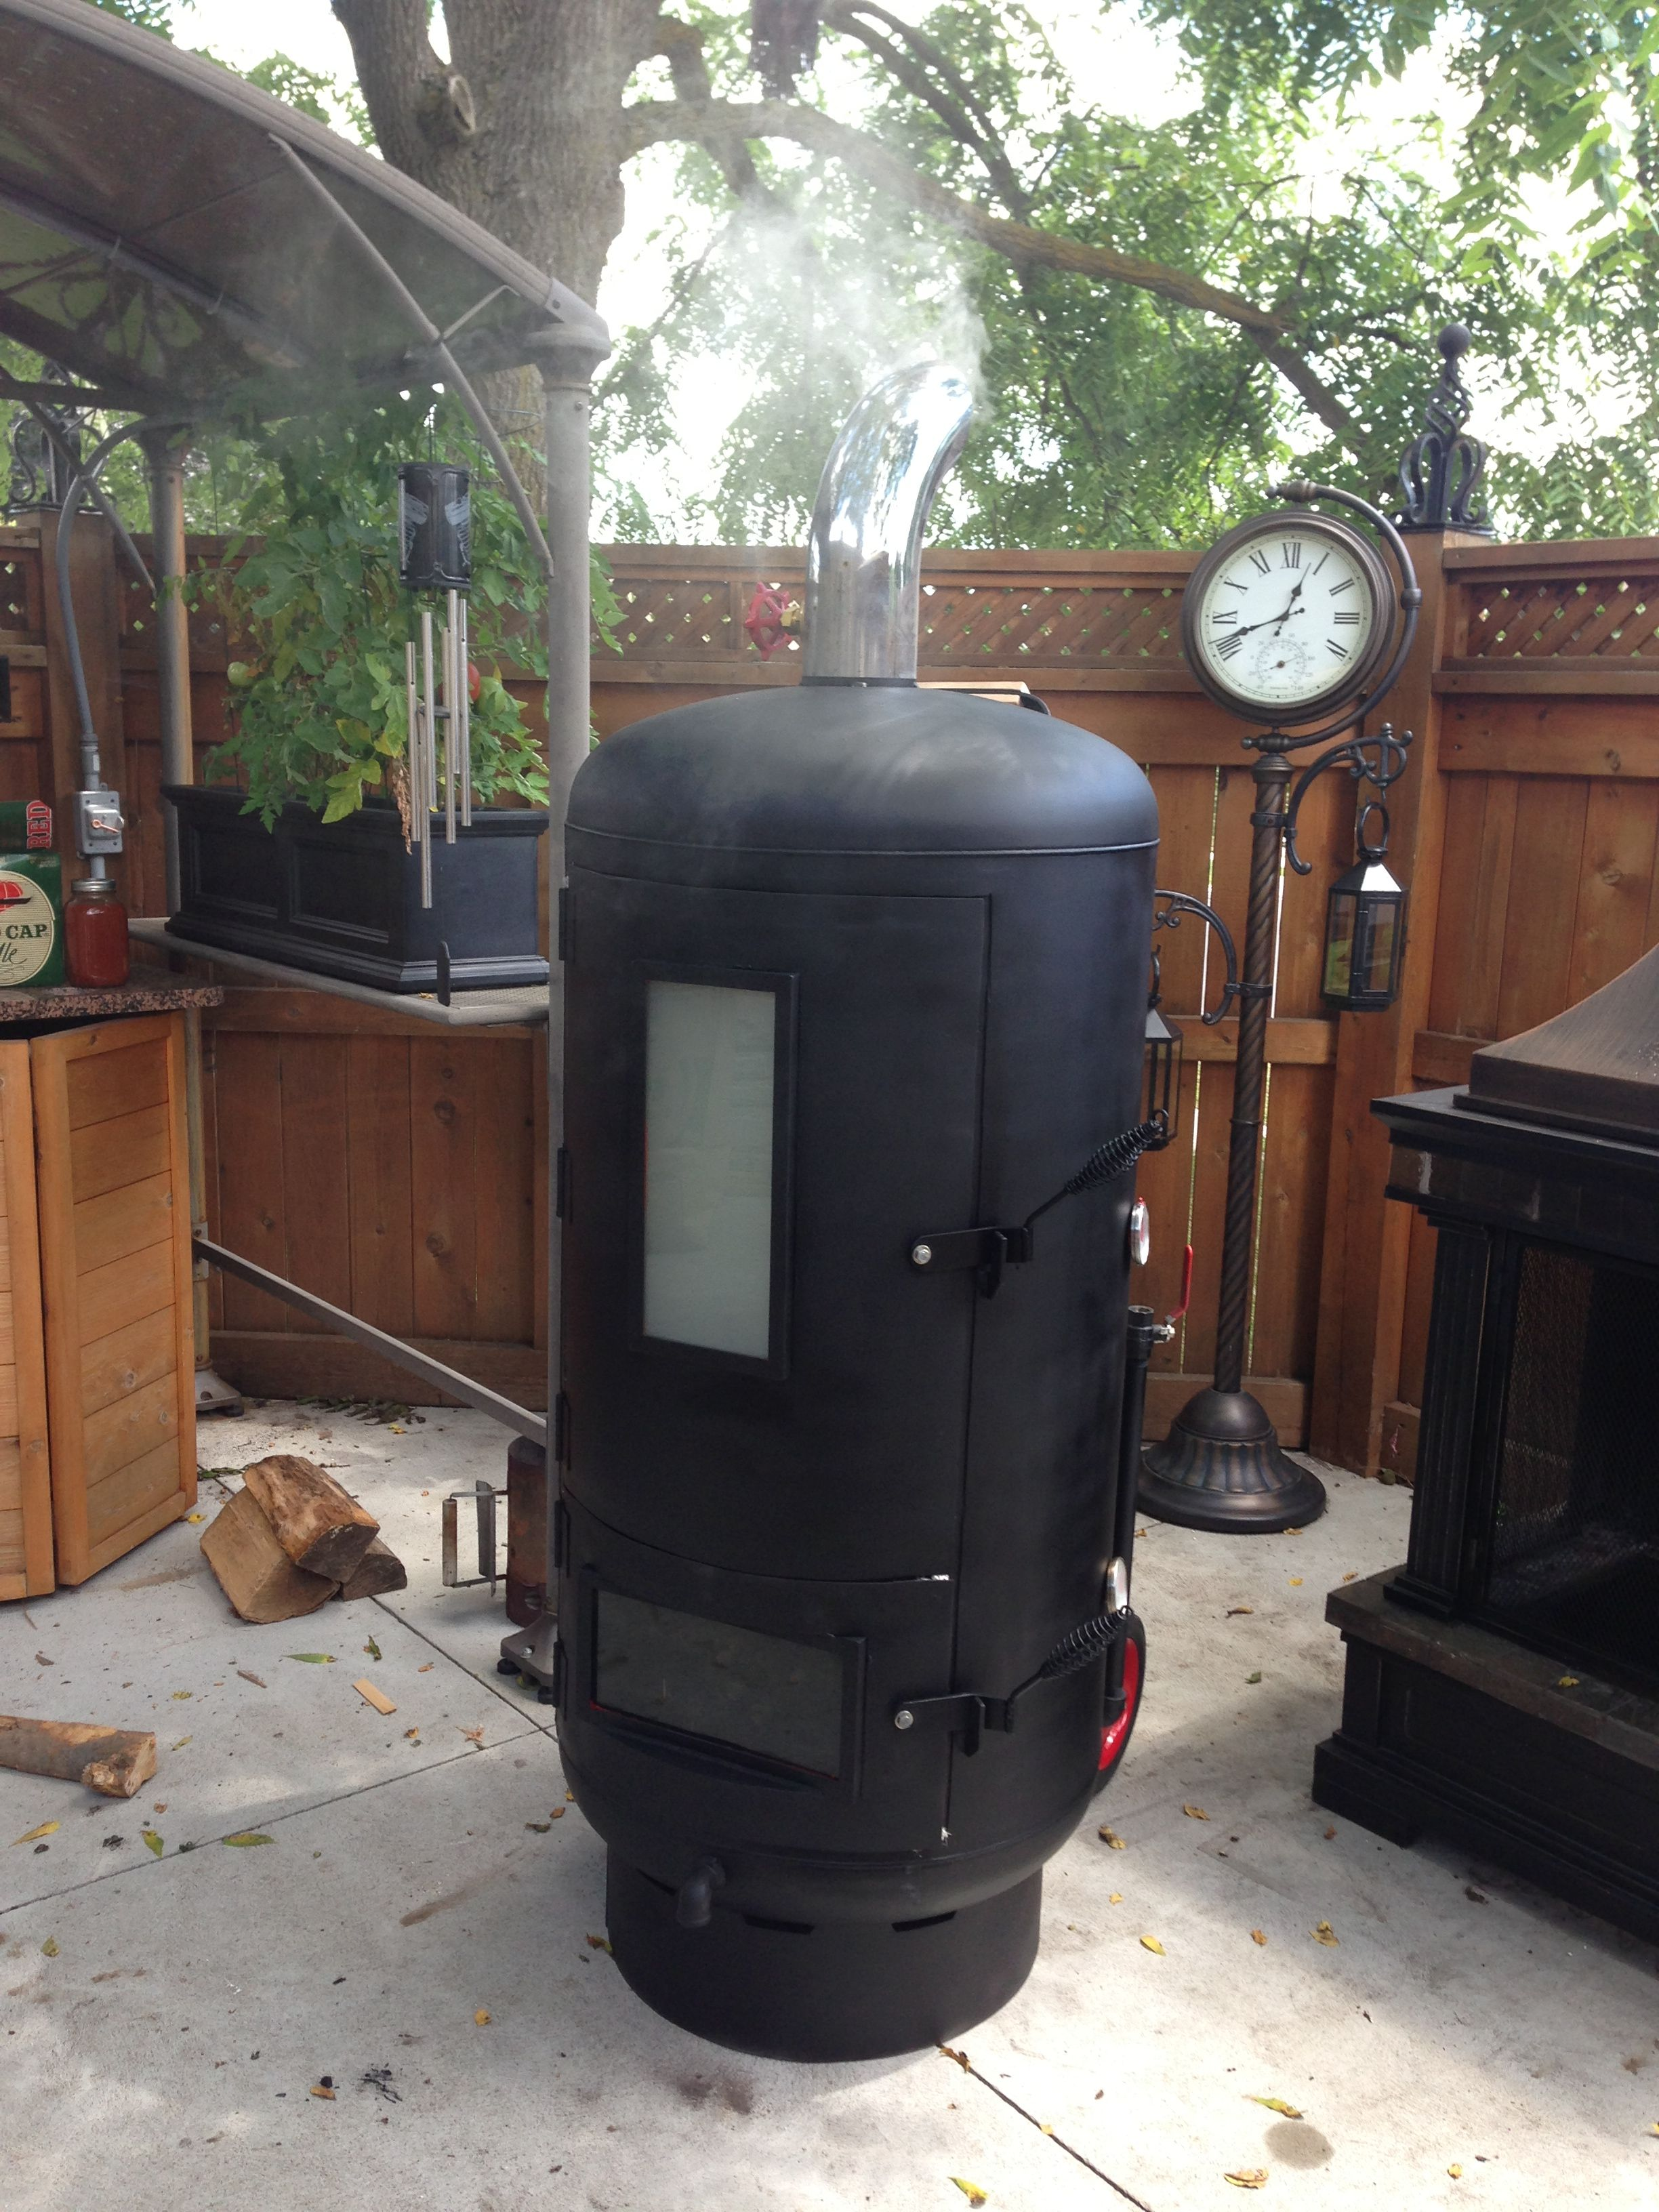 A backyard smoker made from a discarded water pressure tank and other reclaimed parts Like oven door glass and the exhaust pipe from a sem